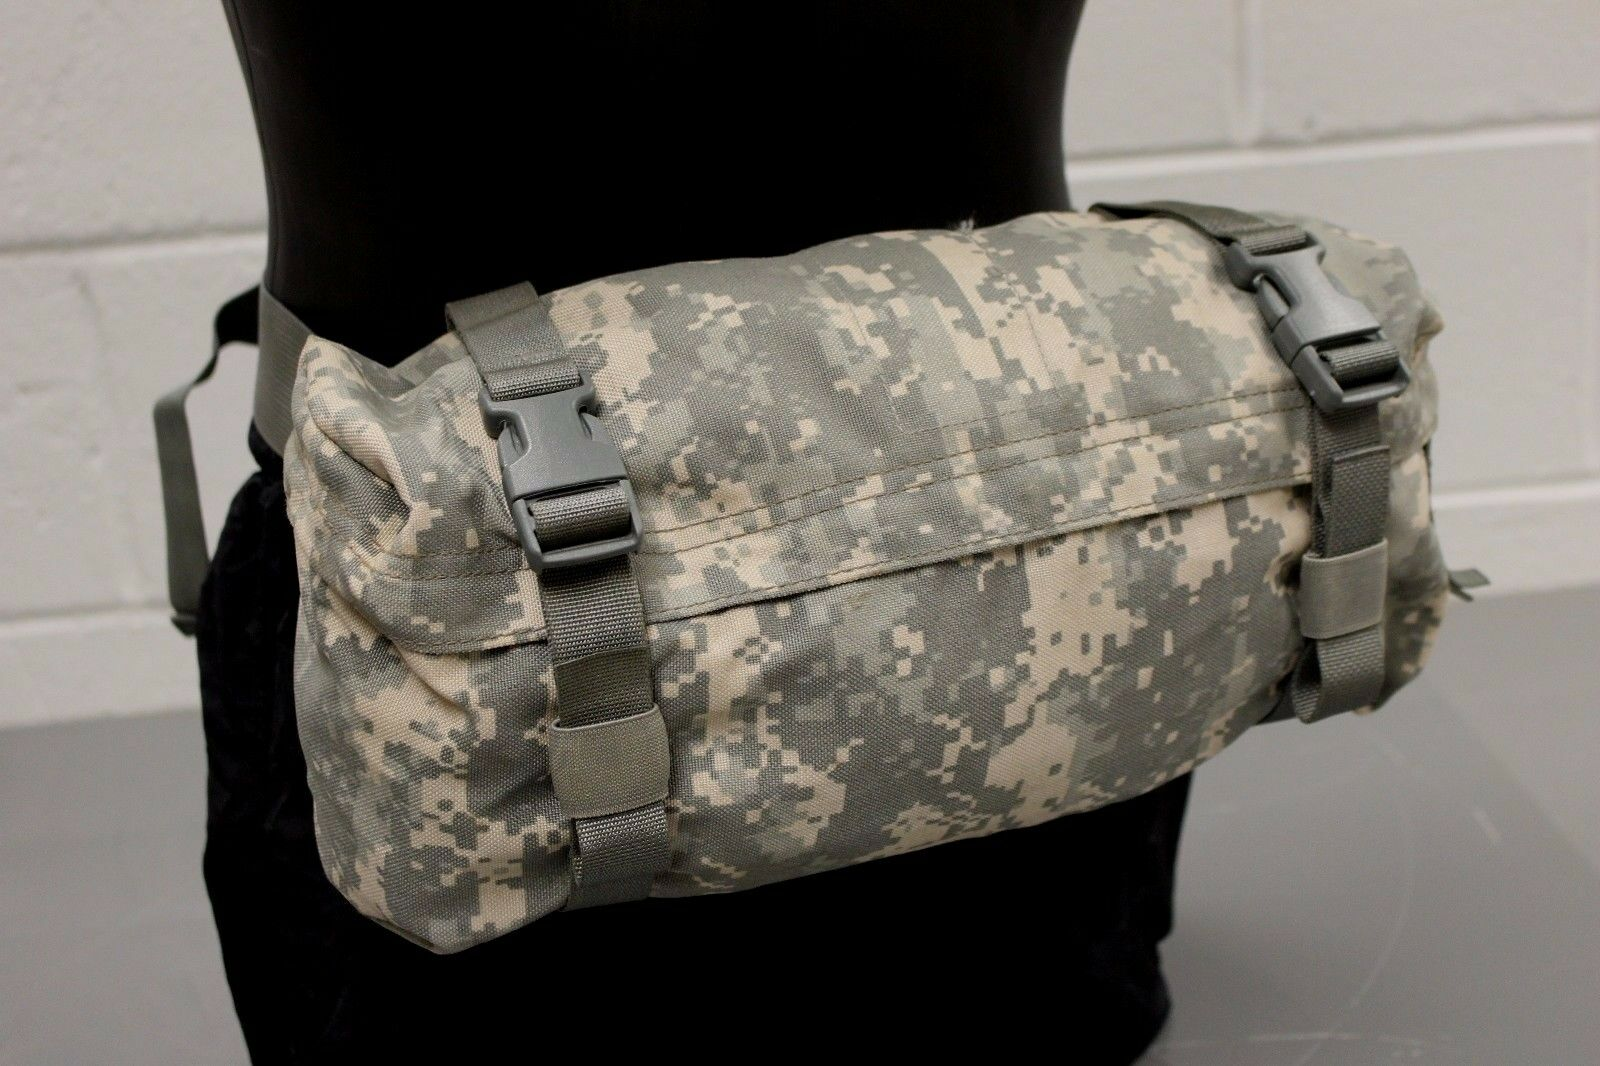 Military Issued ACU Molle II Waist Pack / Butt Pack, 8465-01-524-7263, Excellent